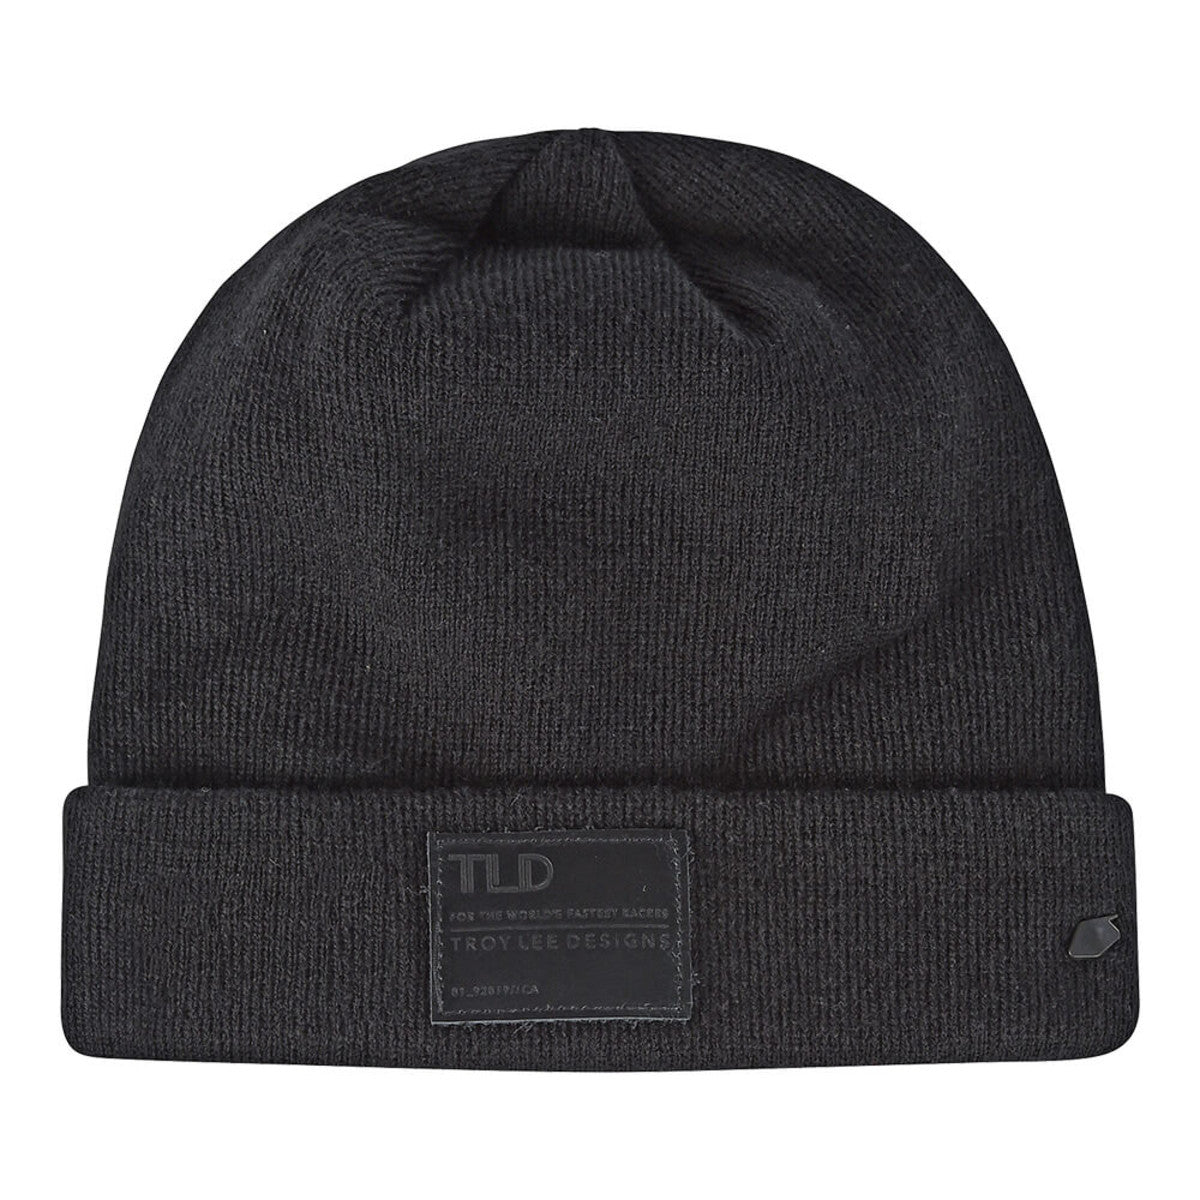 Stealth Beanie - Black by Troy Lee Design